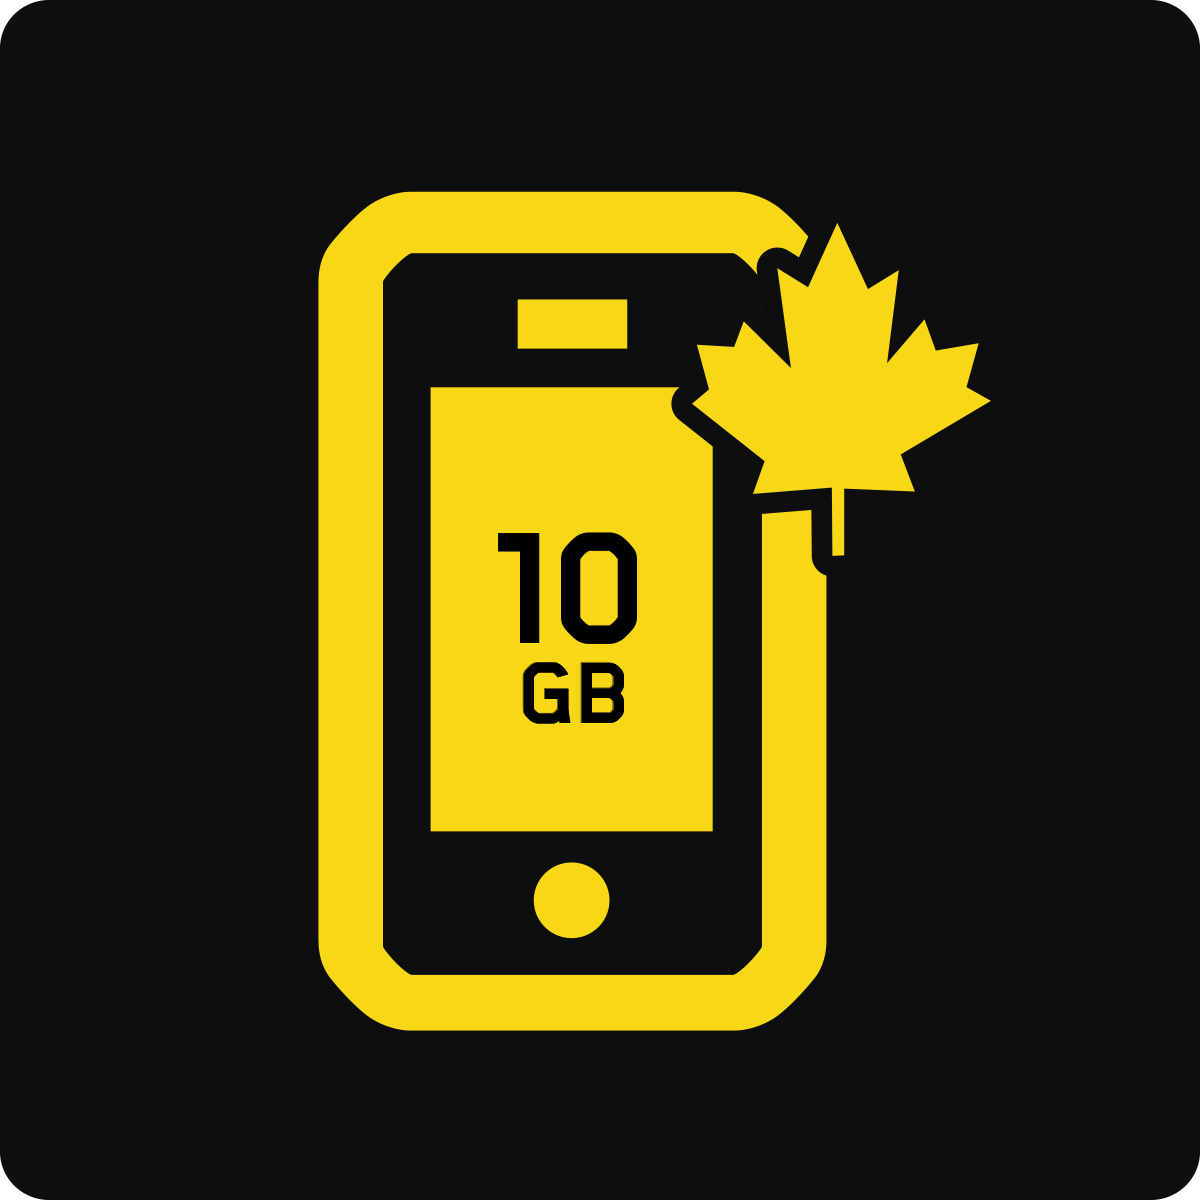 Canada 10GB Business Mobile plan